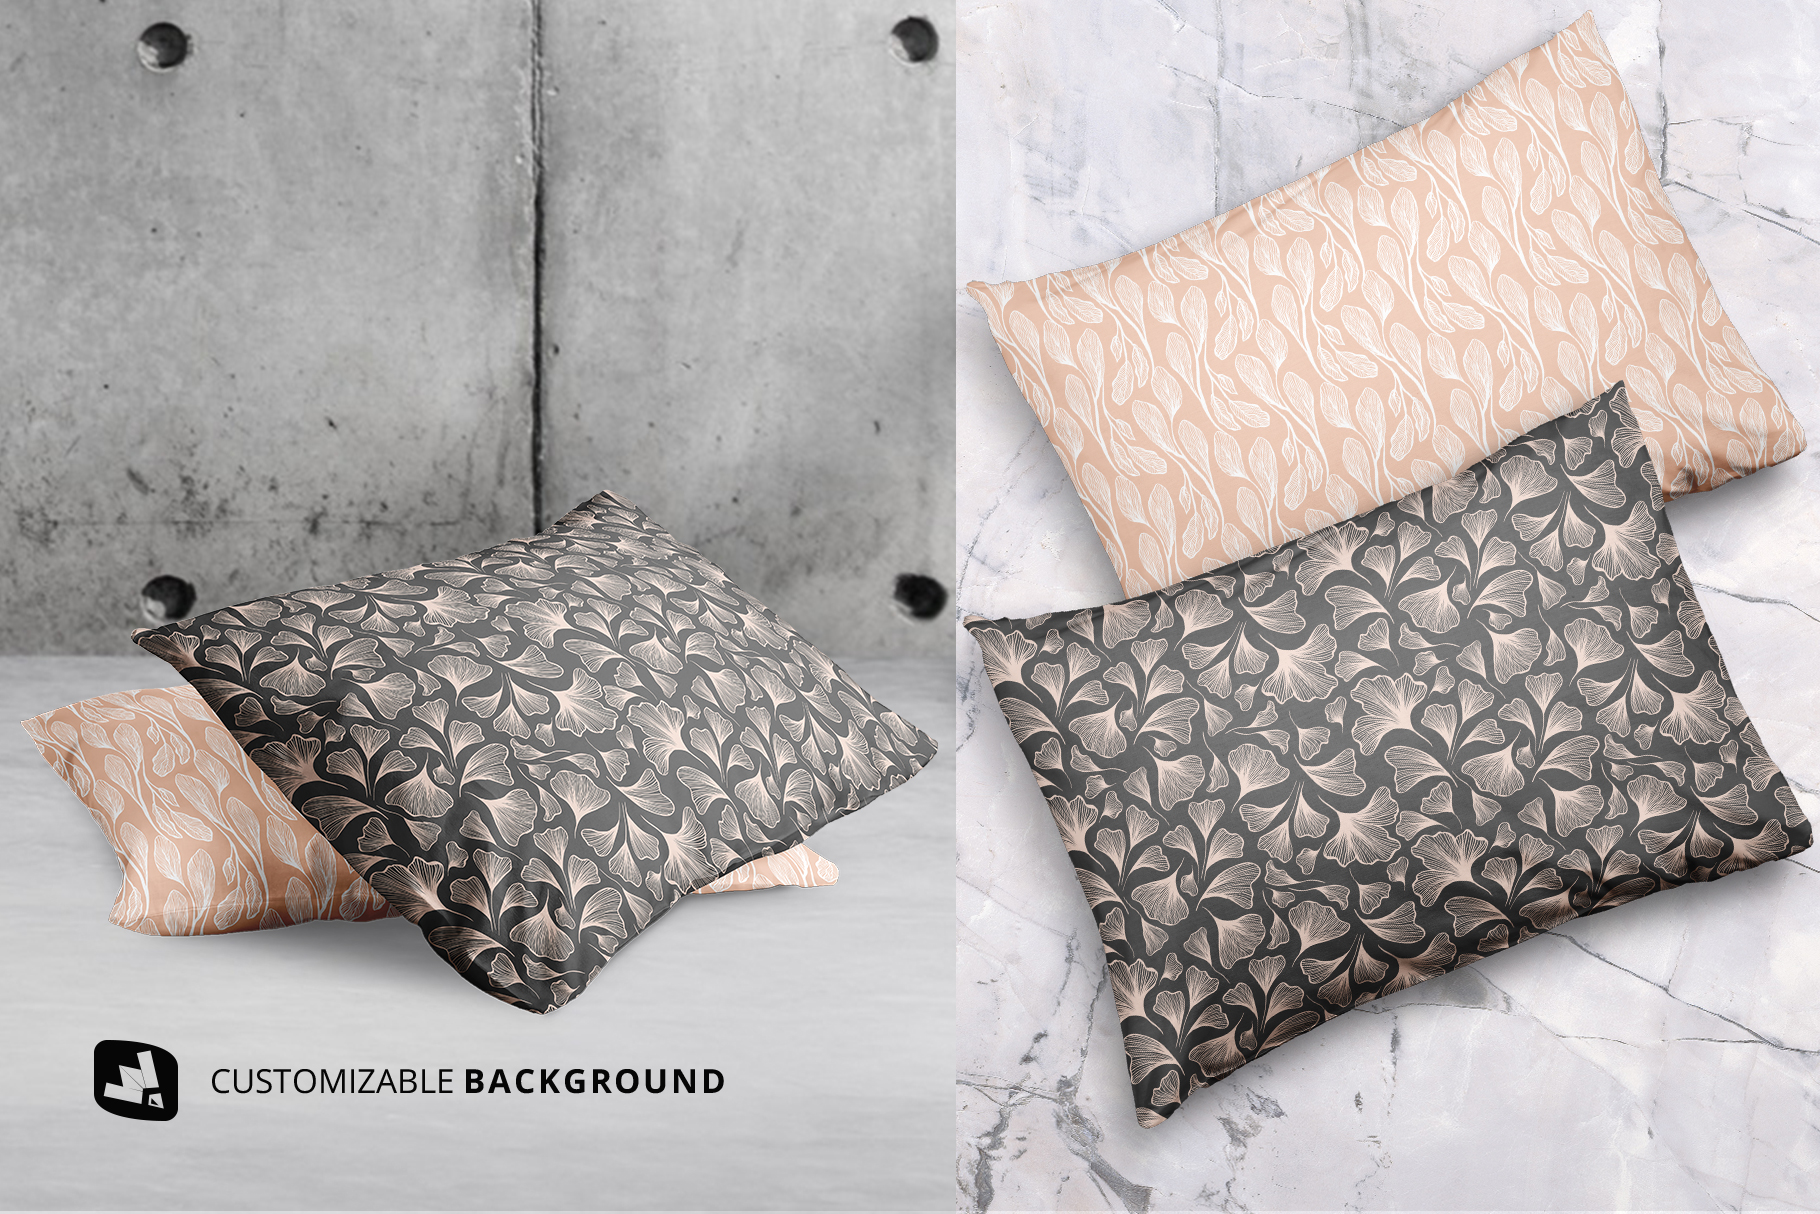 background options of the set of cotton pillow case mockup